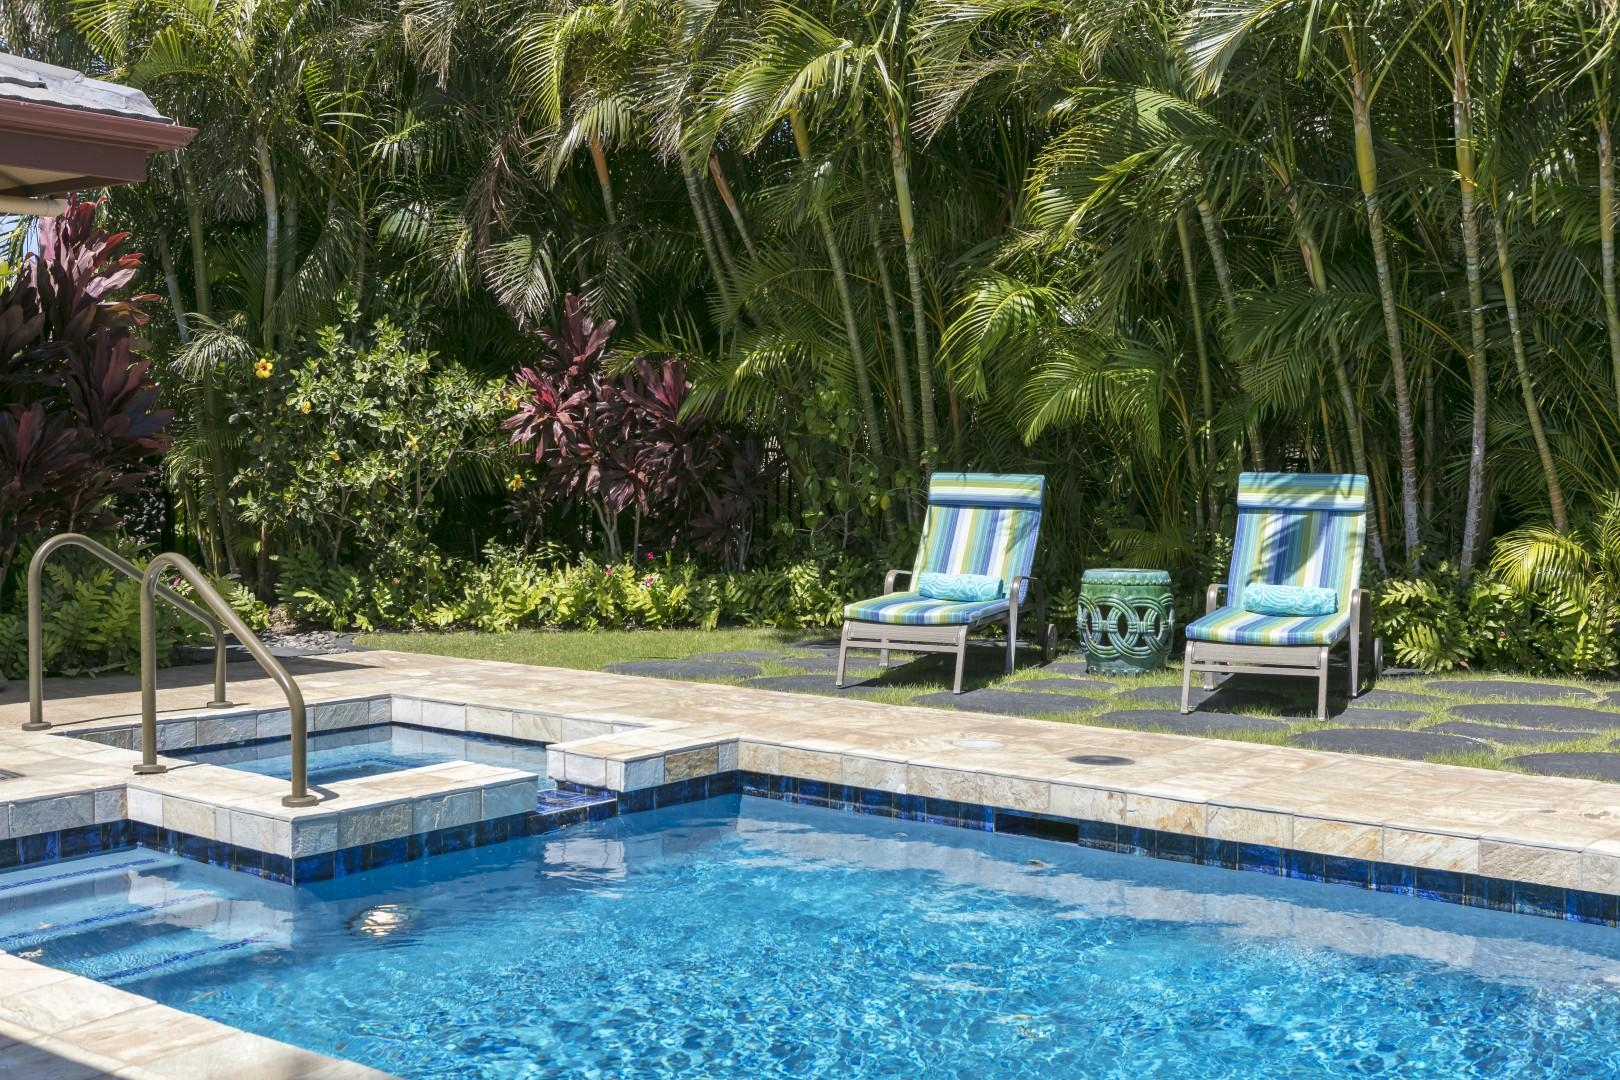 Villages #728 has everything you need!  Private Pool/Spa and Back Yard - 3 bedrooms, 3.5 baths and office - Not a CONDO, THIS IS A HOME - PLUS OVER 30 5-STAR REVIEWS!  Enjoy your private pool/spa anytime of the day!